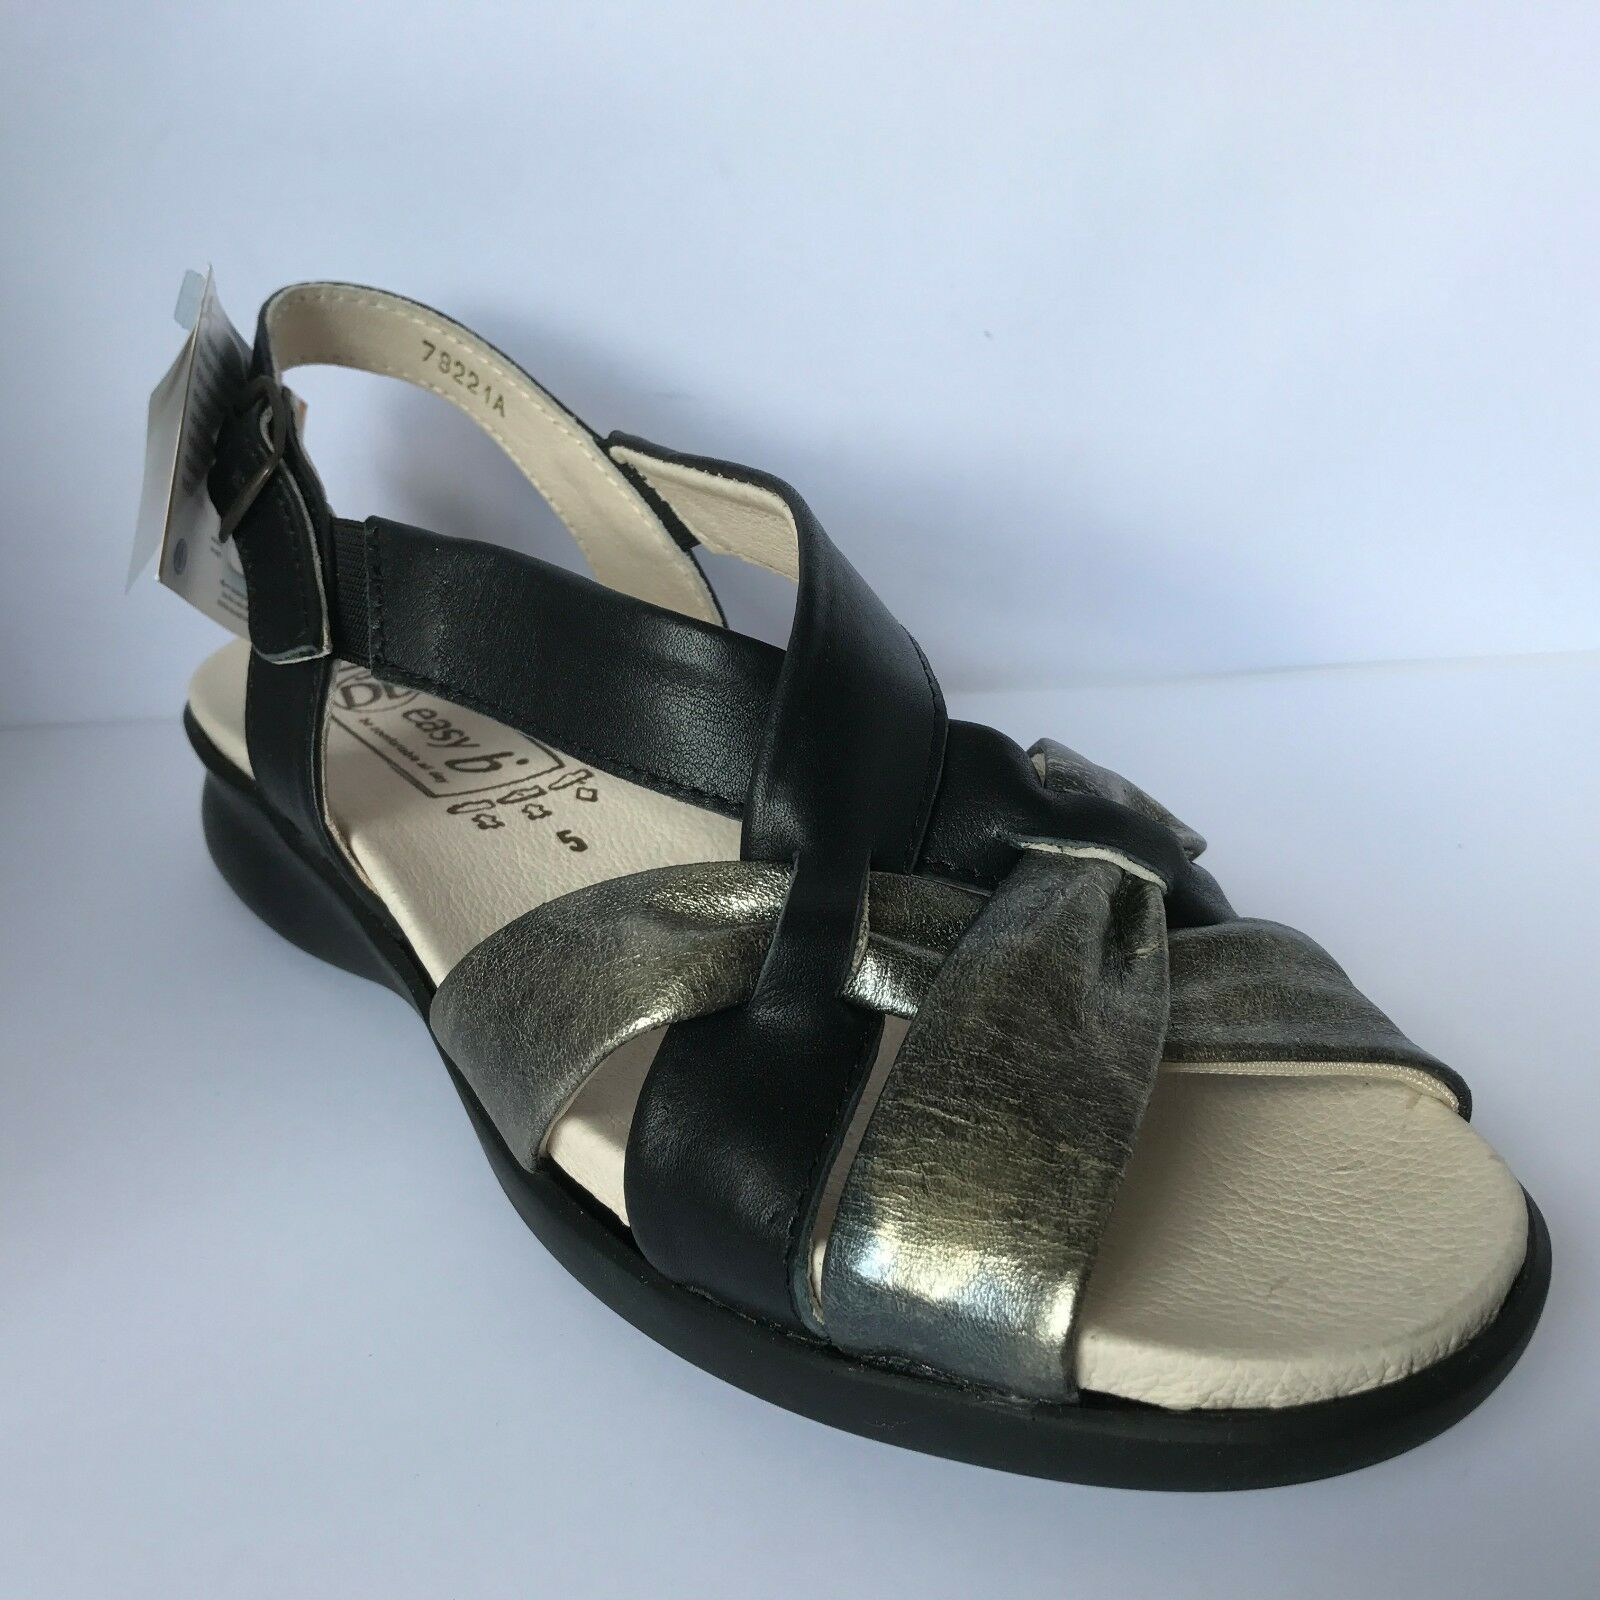 Easy B Stround Variable Sandals Leather Negro/Pewter EE-EEEE Fitting Variable Stround New £37.99 317cf1